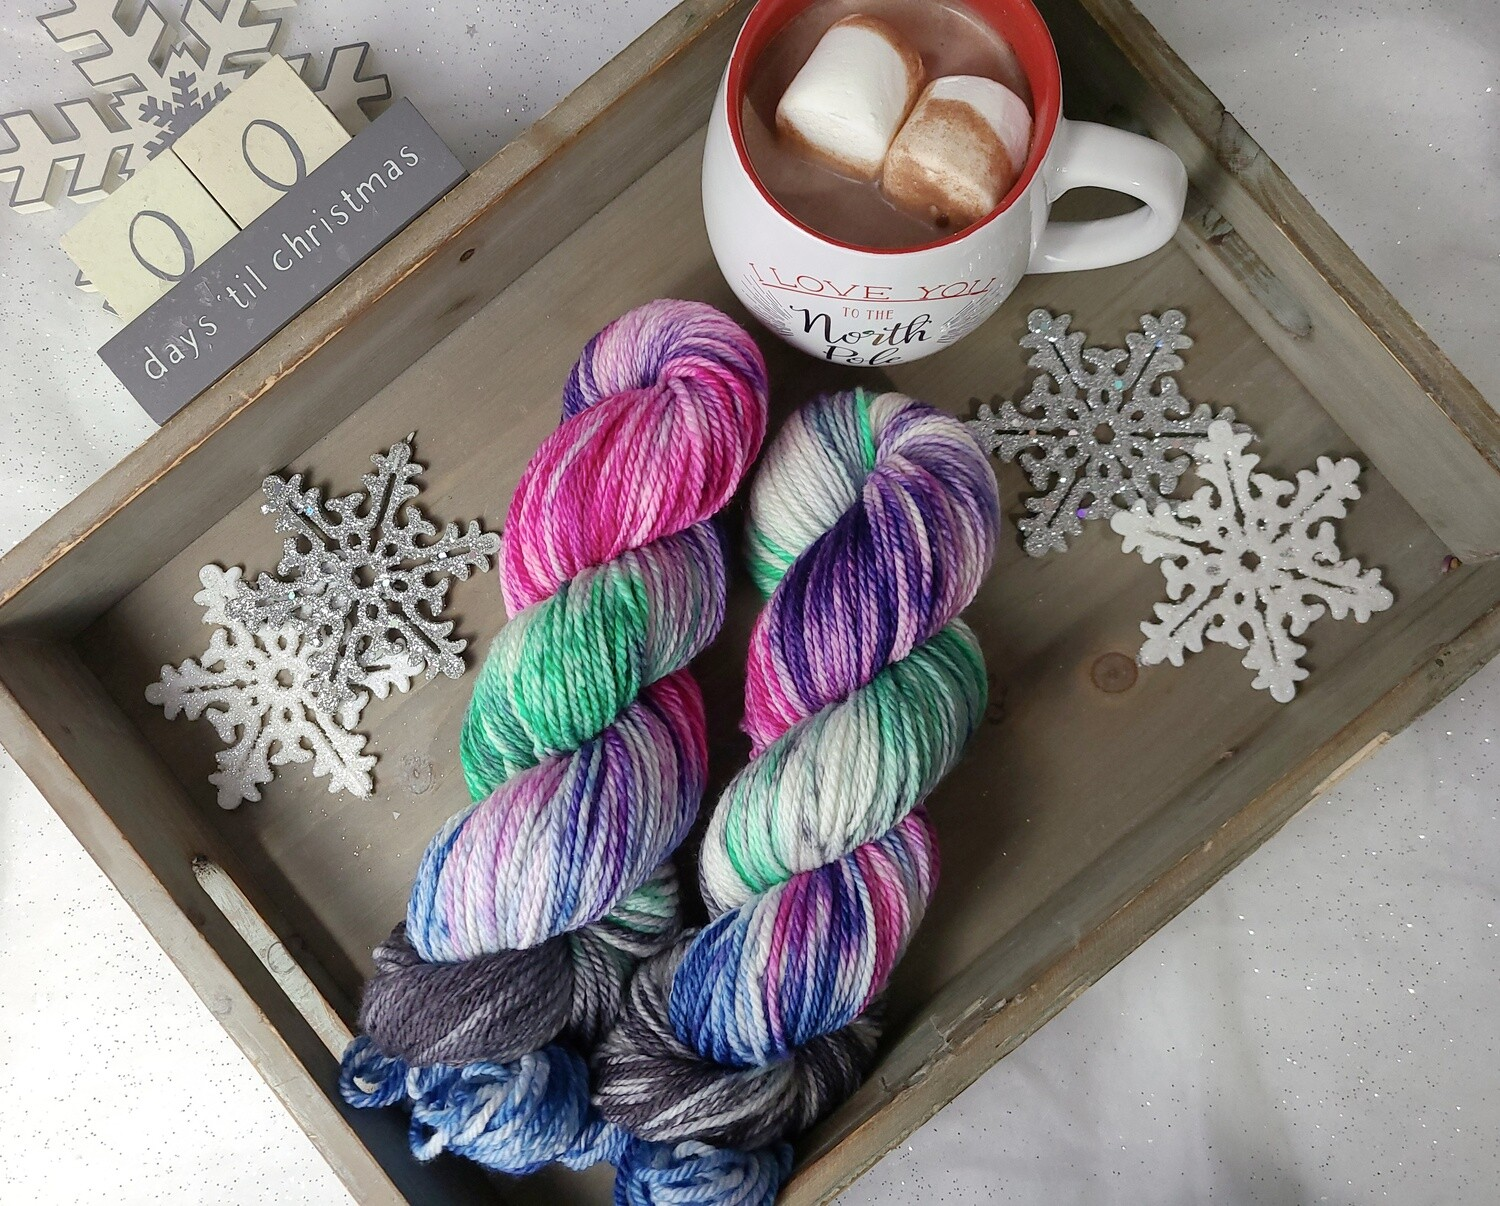 Northern Lights (Aran) Hand Dyed Yarn